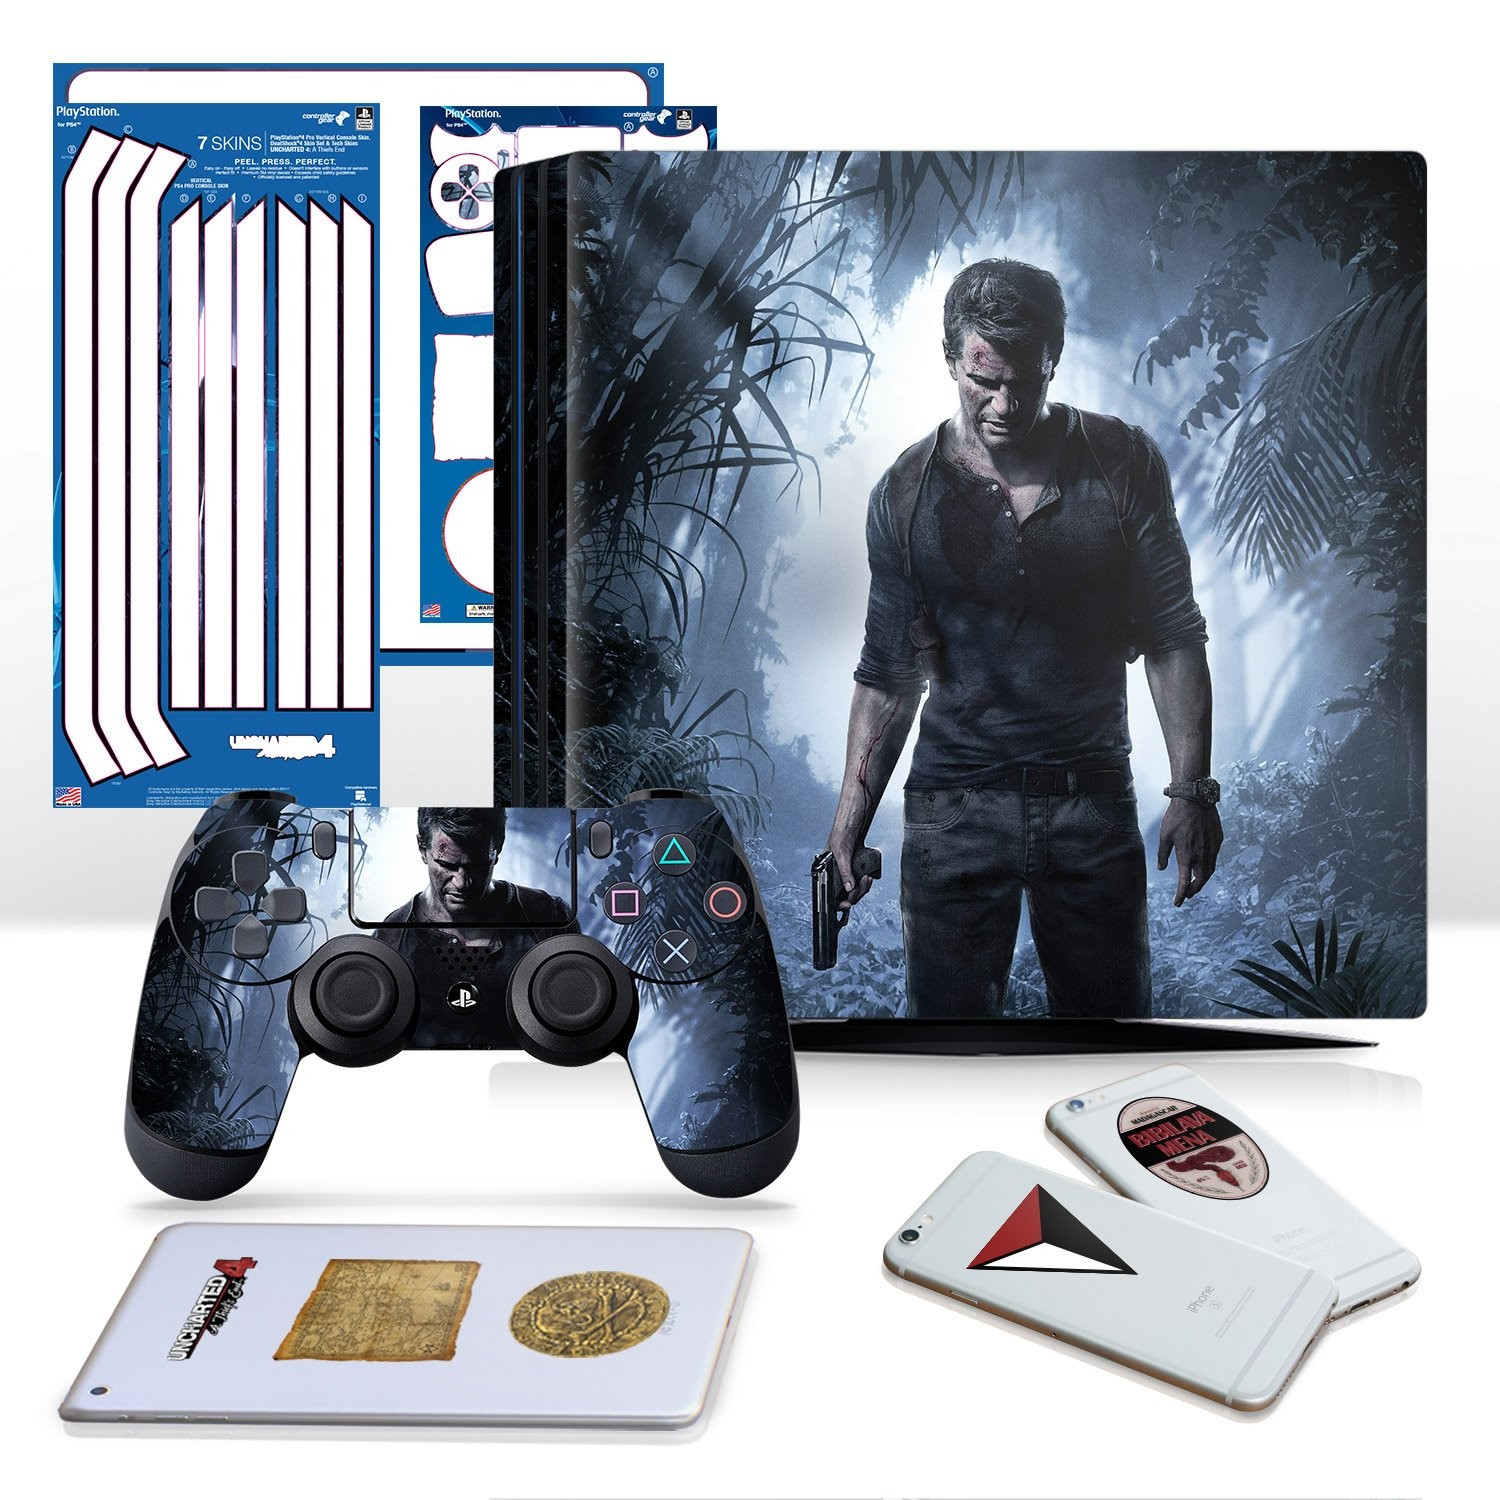 Uncharted 4 A Thief's End - PS4 PRO Horizontal Console and Controller Gaming Skin Pack - Officially Licensed by PlayStation - Controller Gear